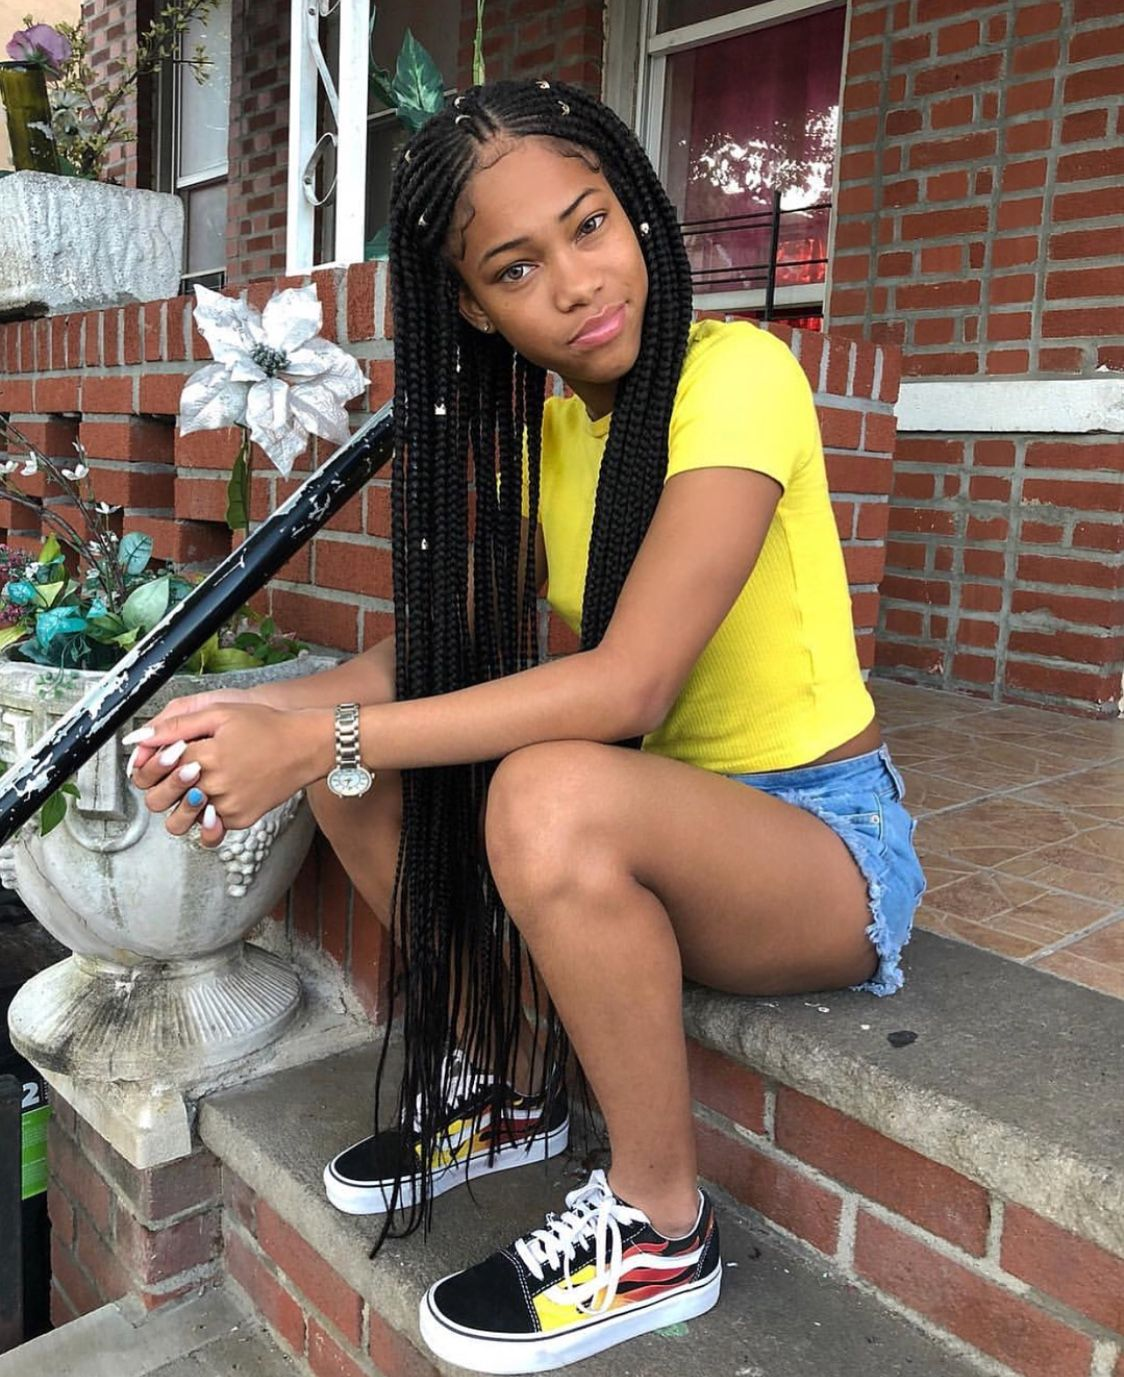 Braided Hairstyles For Black Hair Pinterest Uncategorized Braids And Beads Natural Hairsty Hair Styles Braids Hairstyles Pictures Black Girl Braided Hairstyles